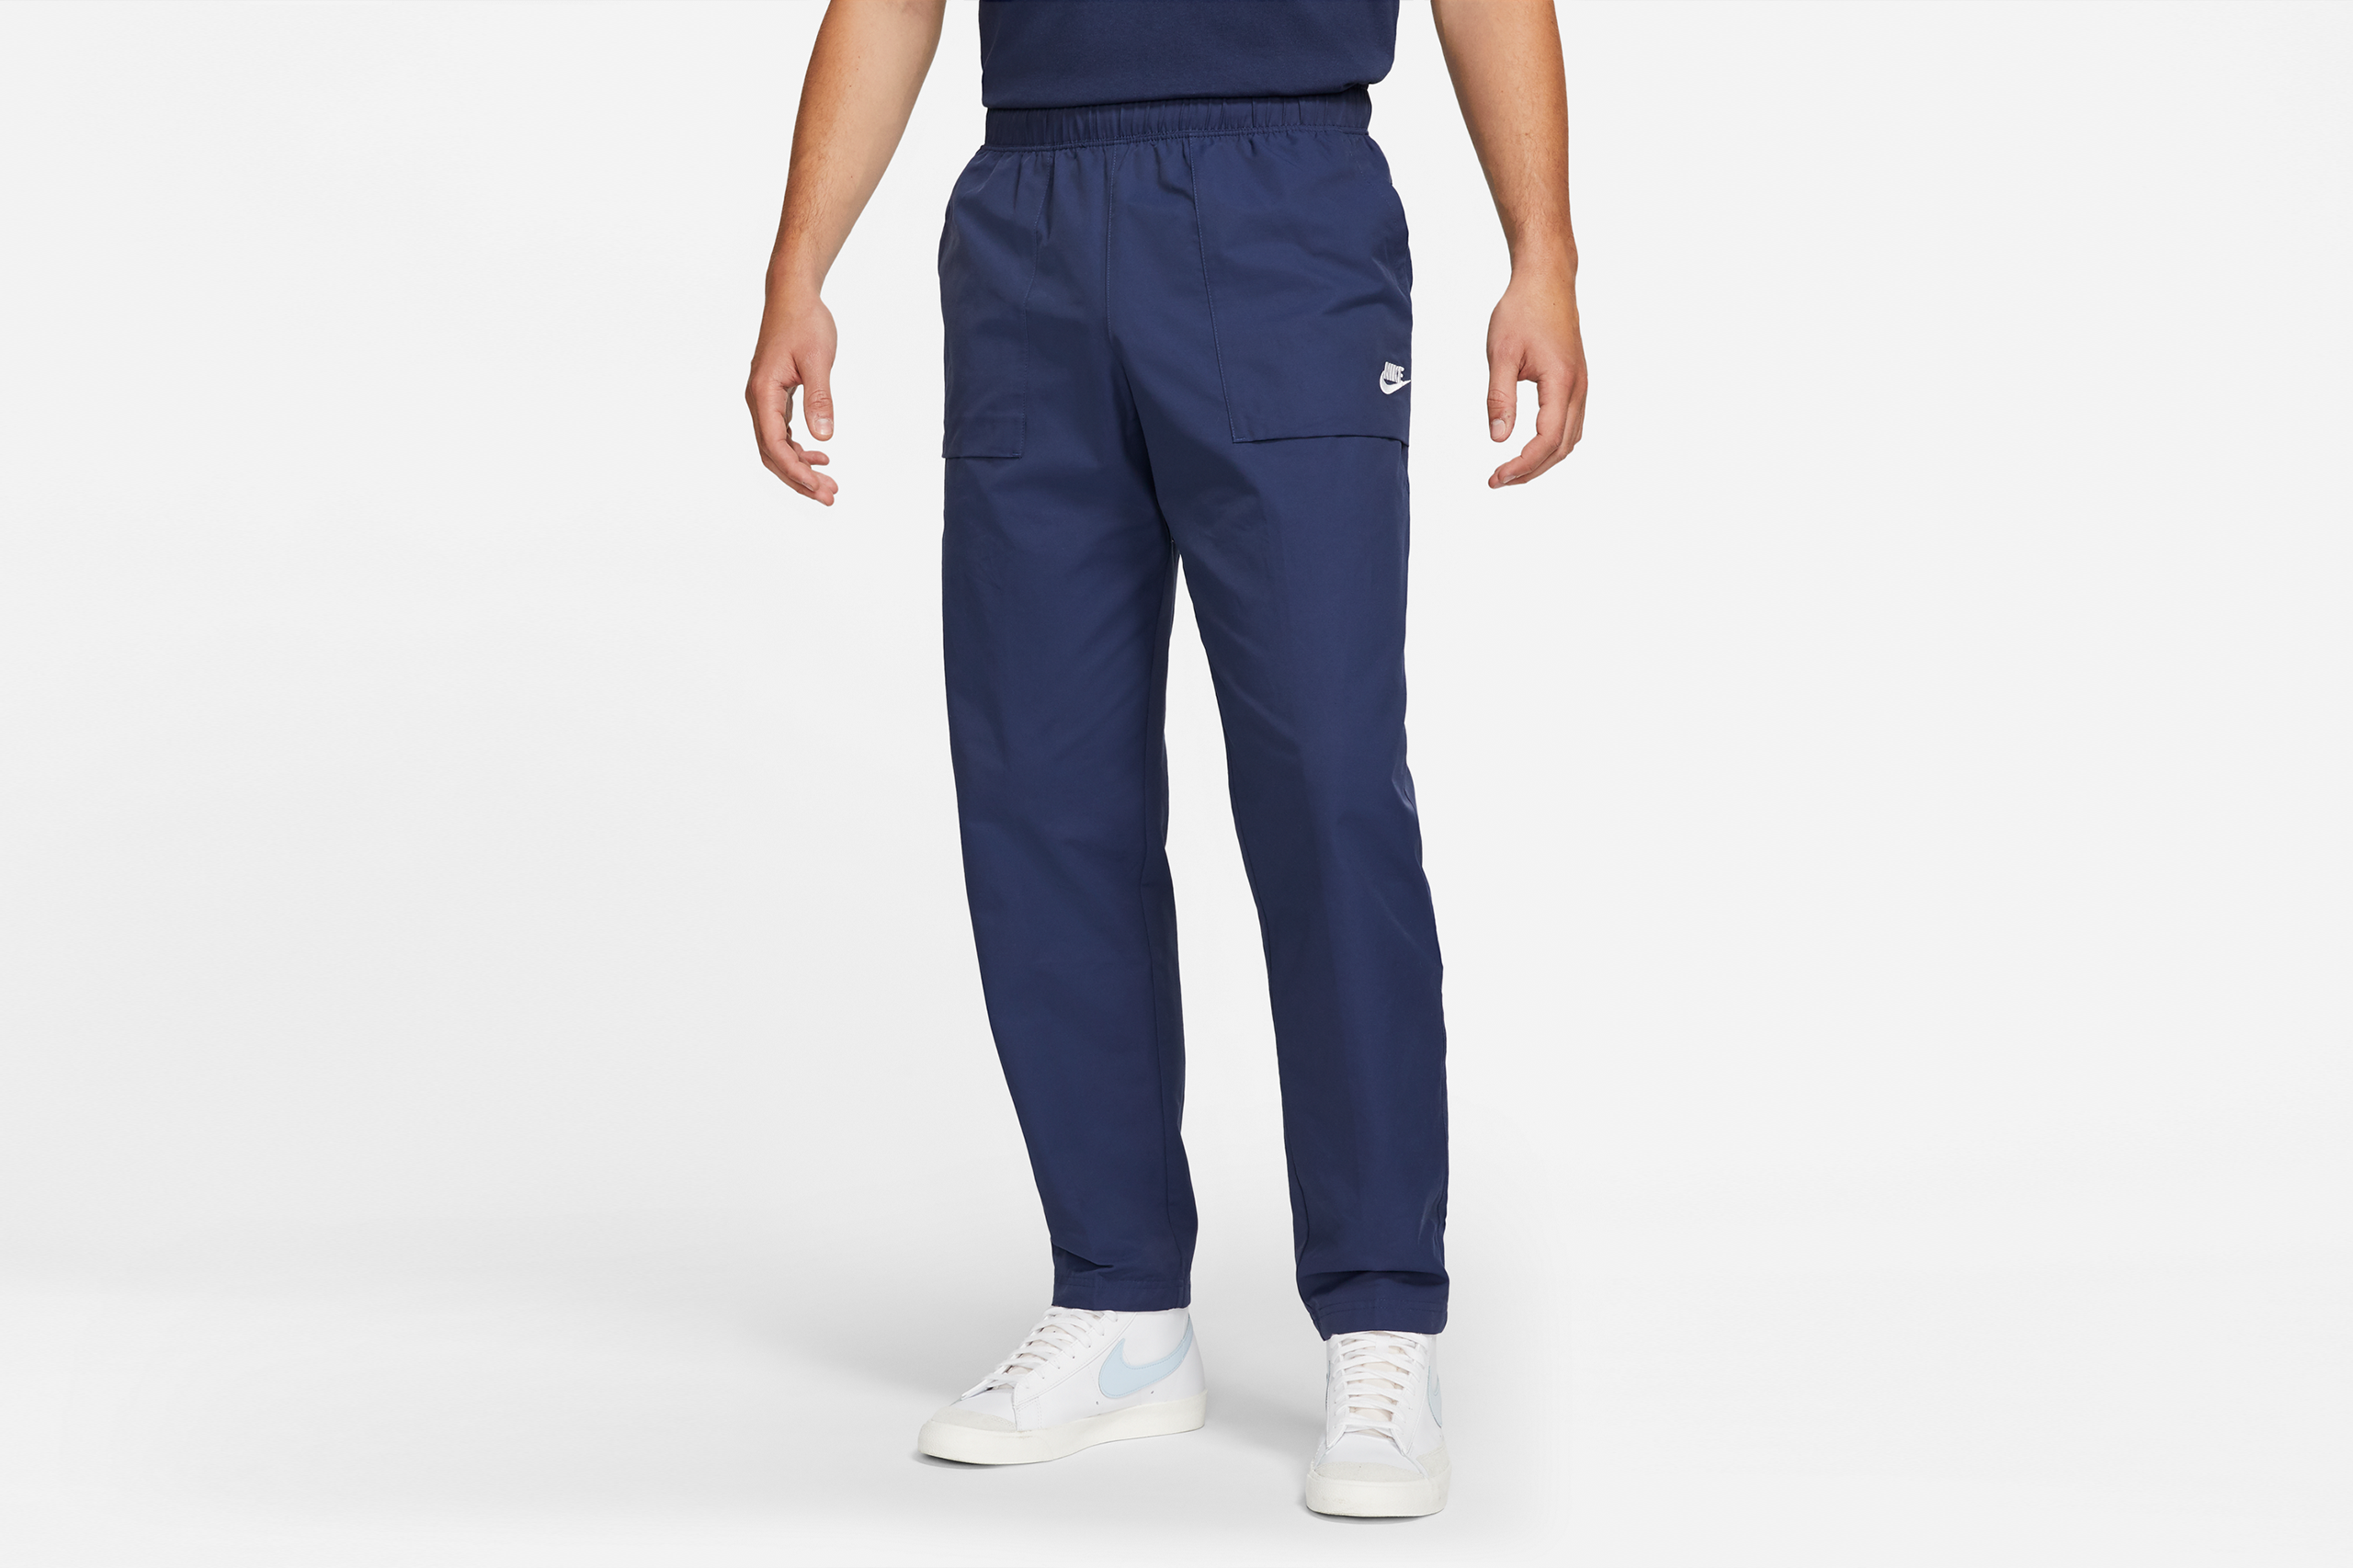 Nike NSW City Edition Woven Pants Midnight Navy/White